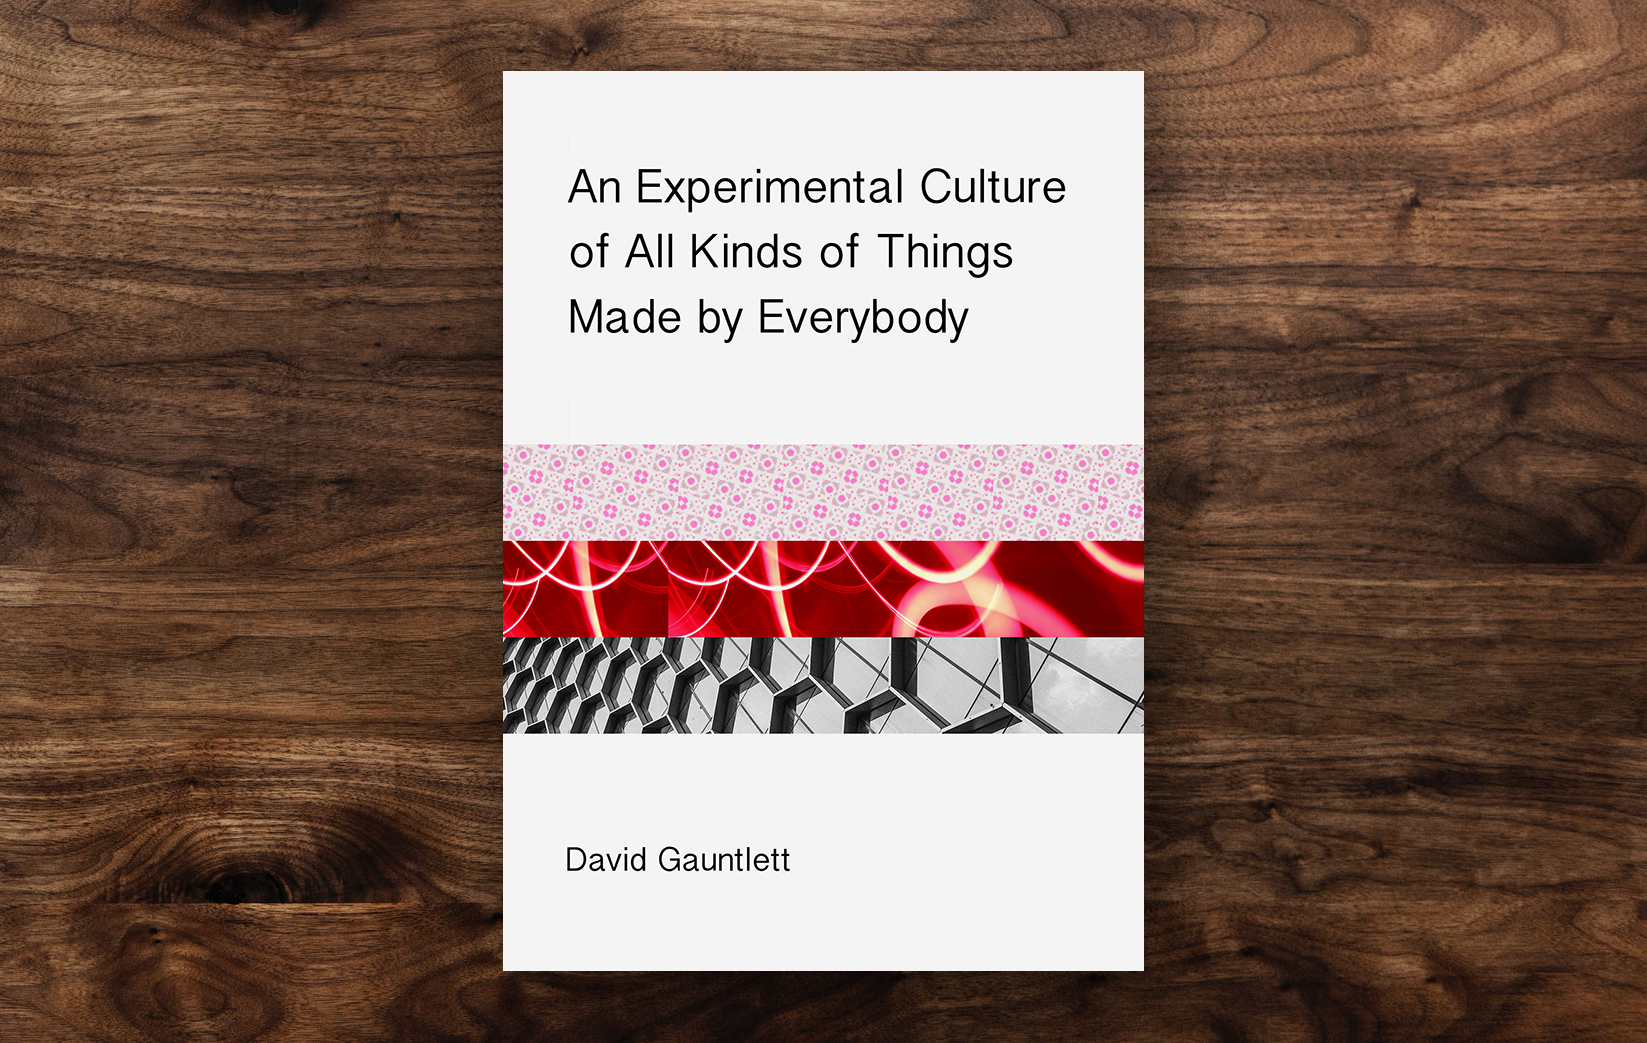 An Experimental Culture of All Kinds of Things Made by Everybody